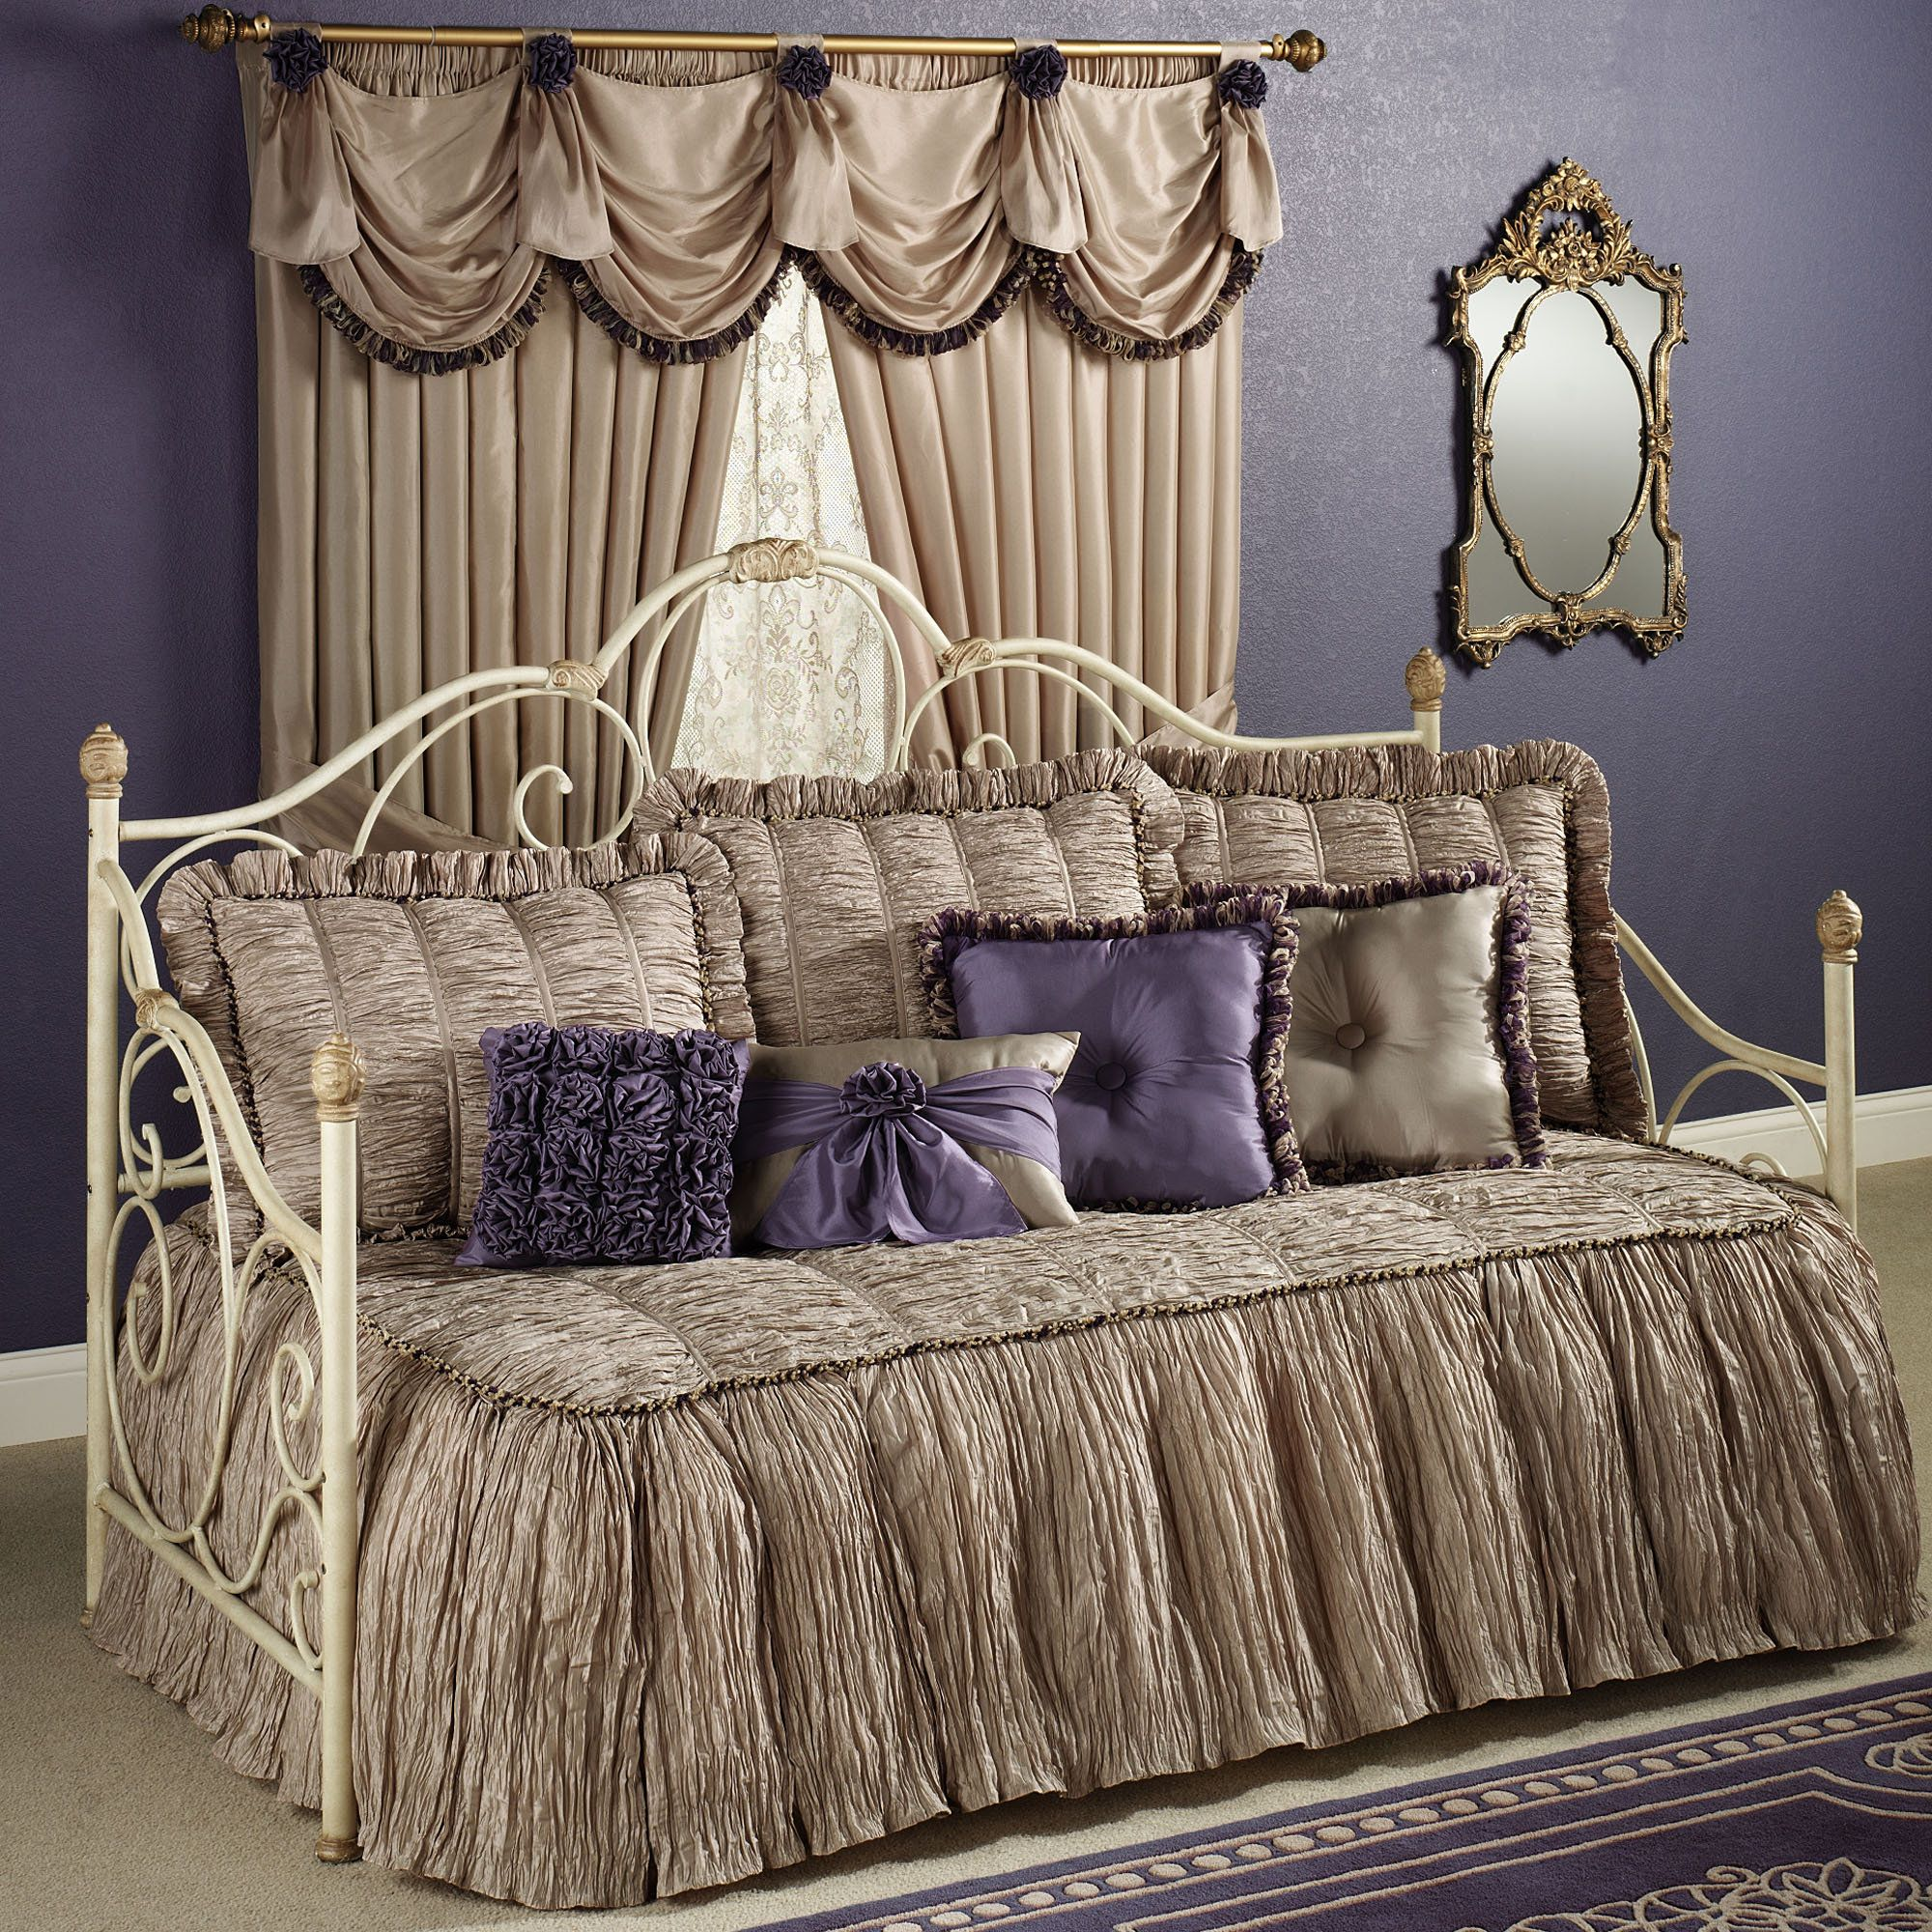 Overstock daybed bedding home design ideas - Baroness Daybed Bedding Set